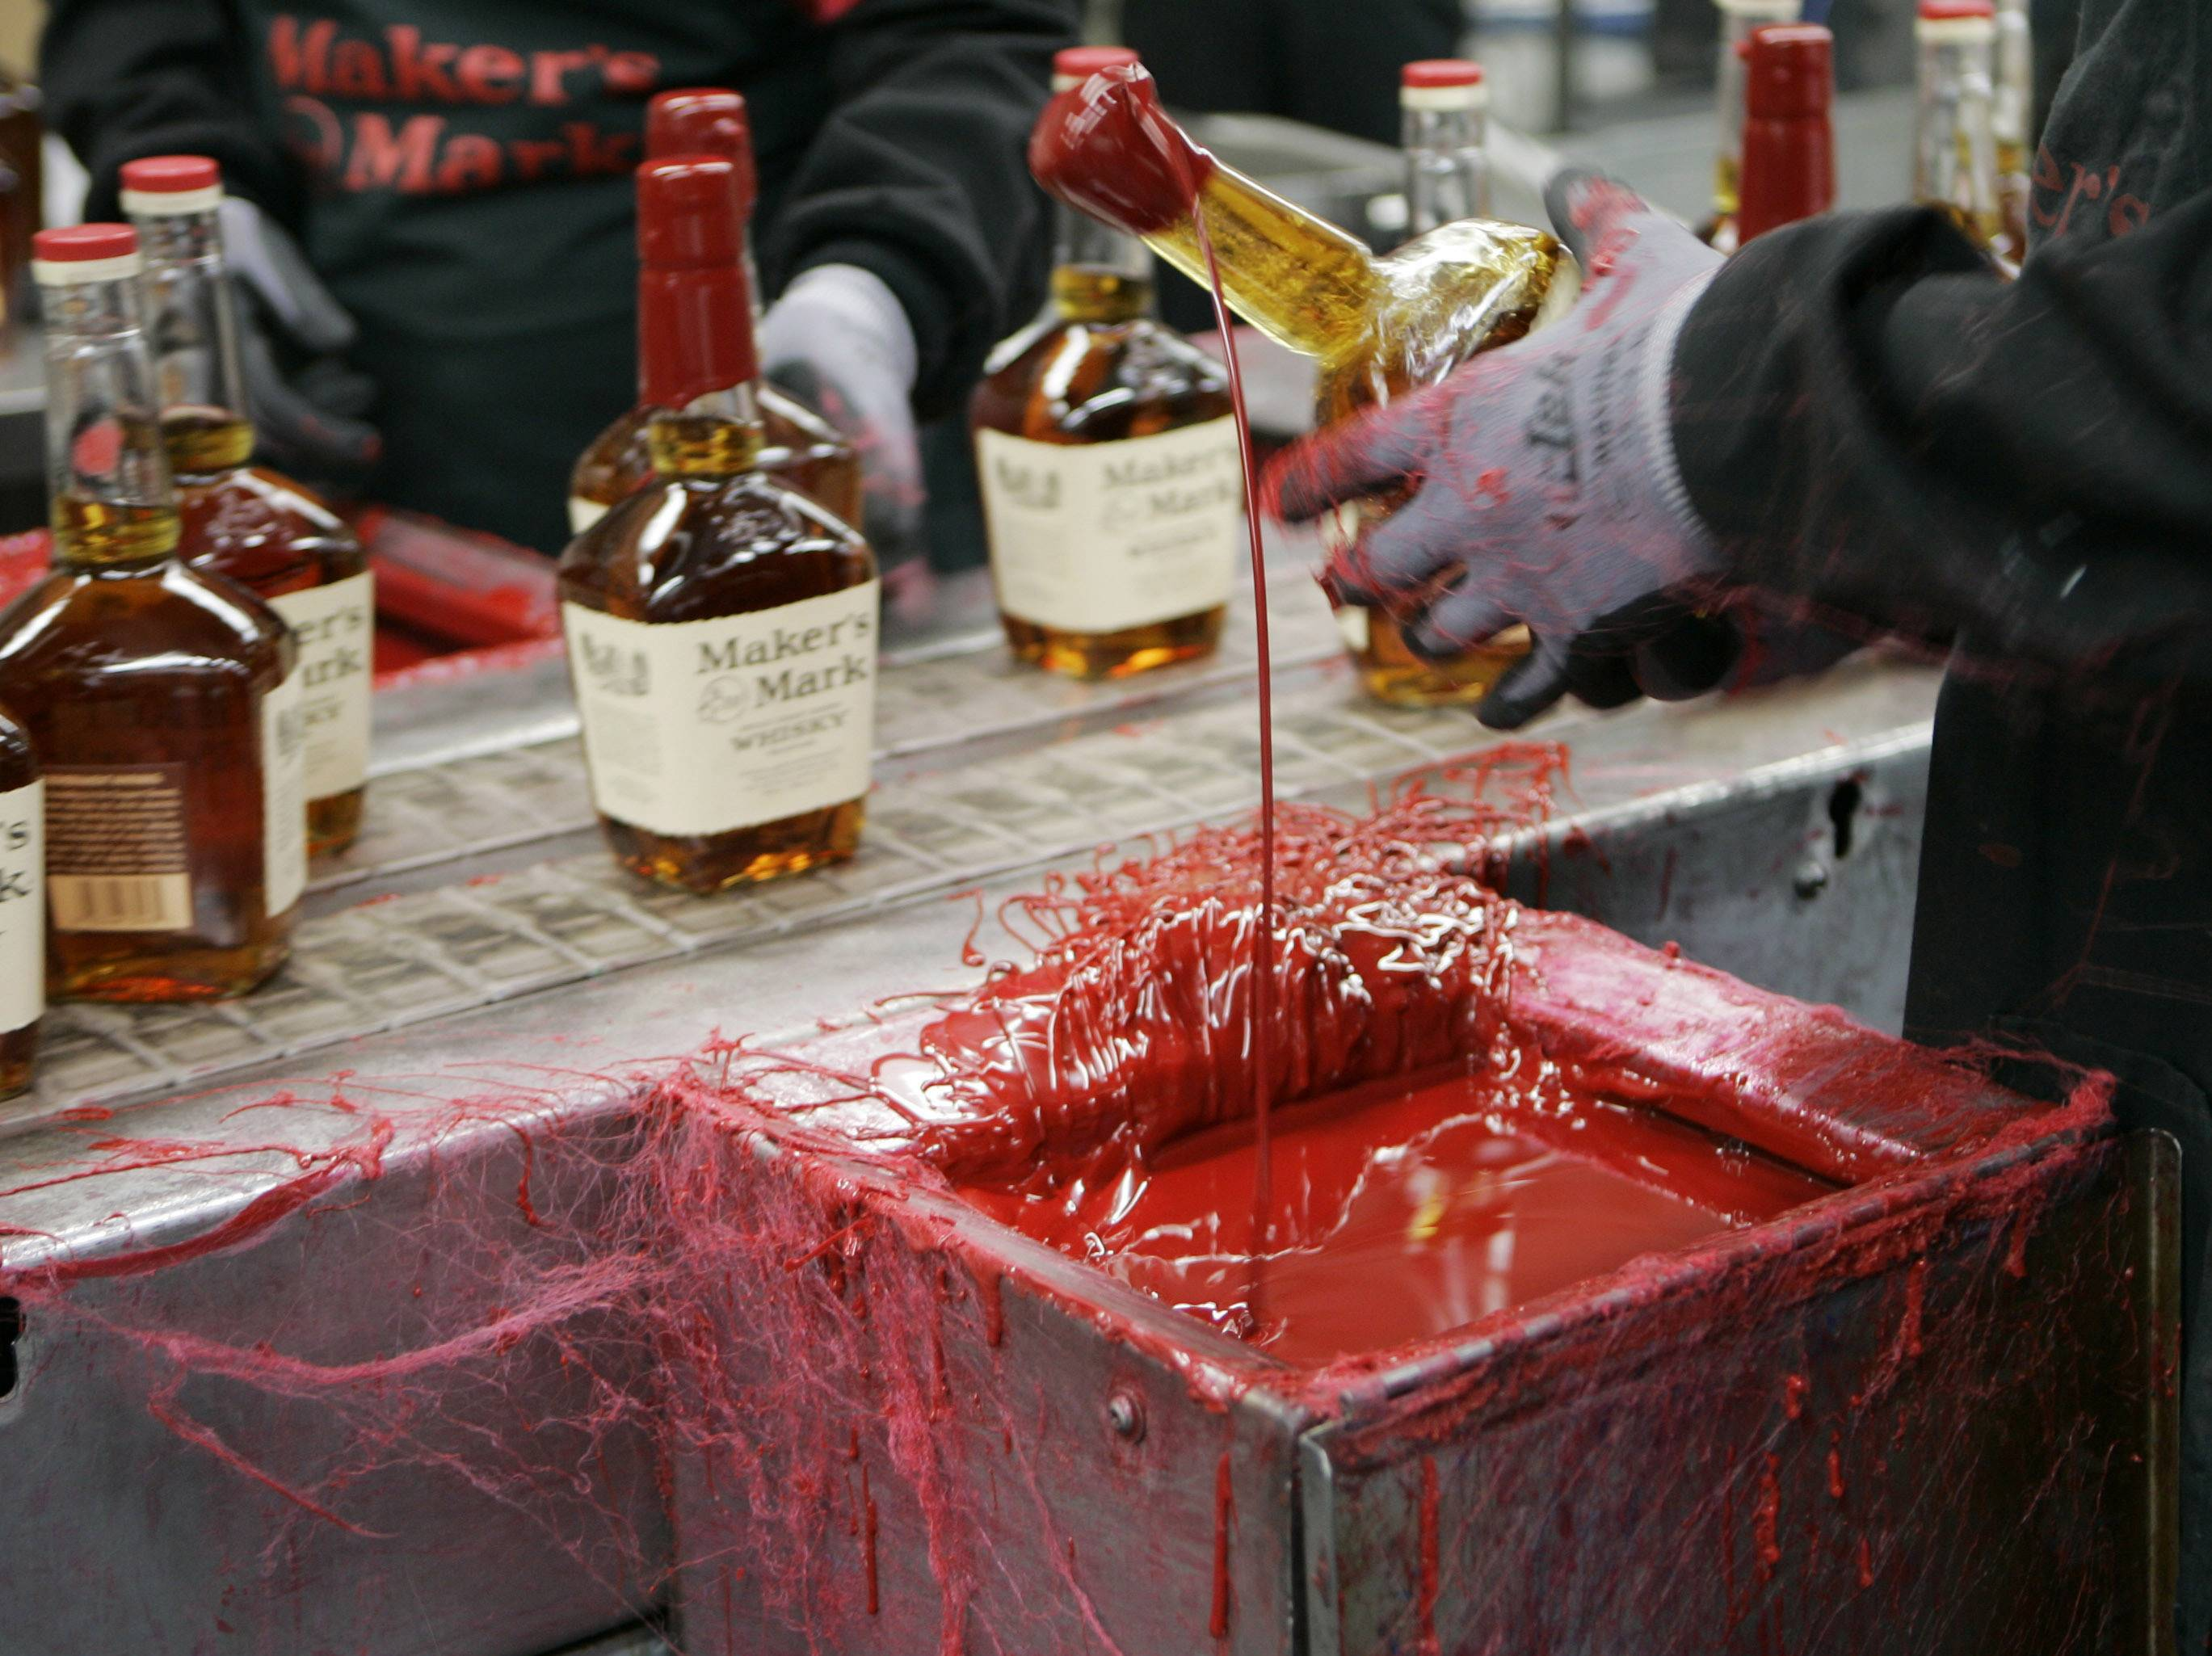 A bottle of Maker's Mark bourbon is dipped in red wax during a tour of the distillery in Loretto, Ky. Kentucky bourbon makers have stashed away their largest stockpiles in more than a generation due to resurgent demand for the venerable brown spirit.